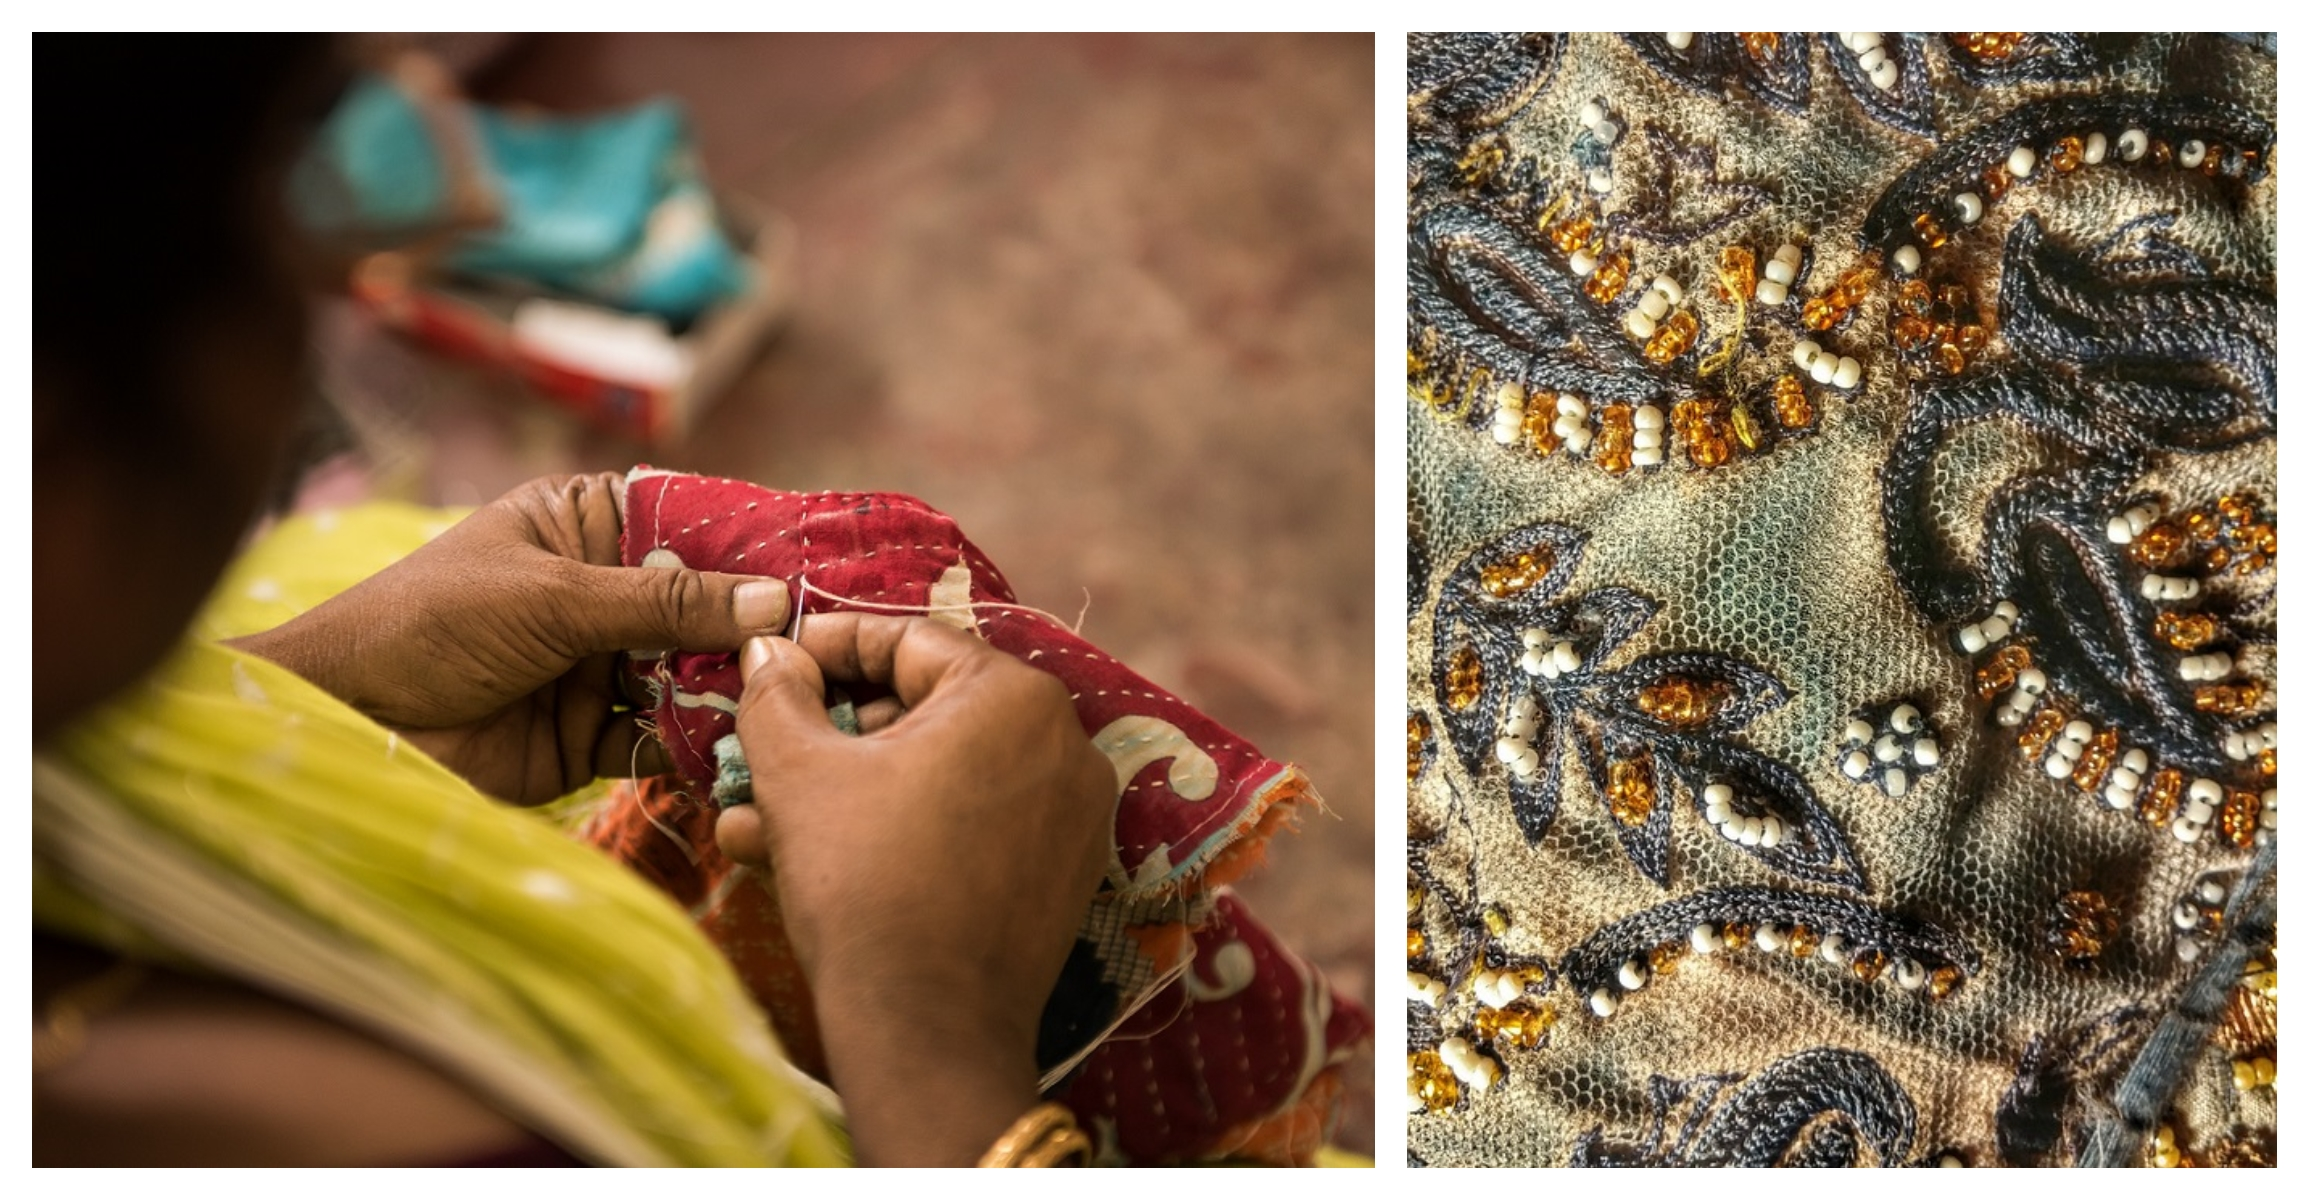 Traditionelle Textilproduktion in Indien